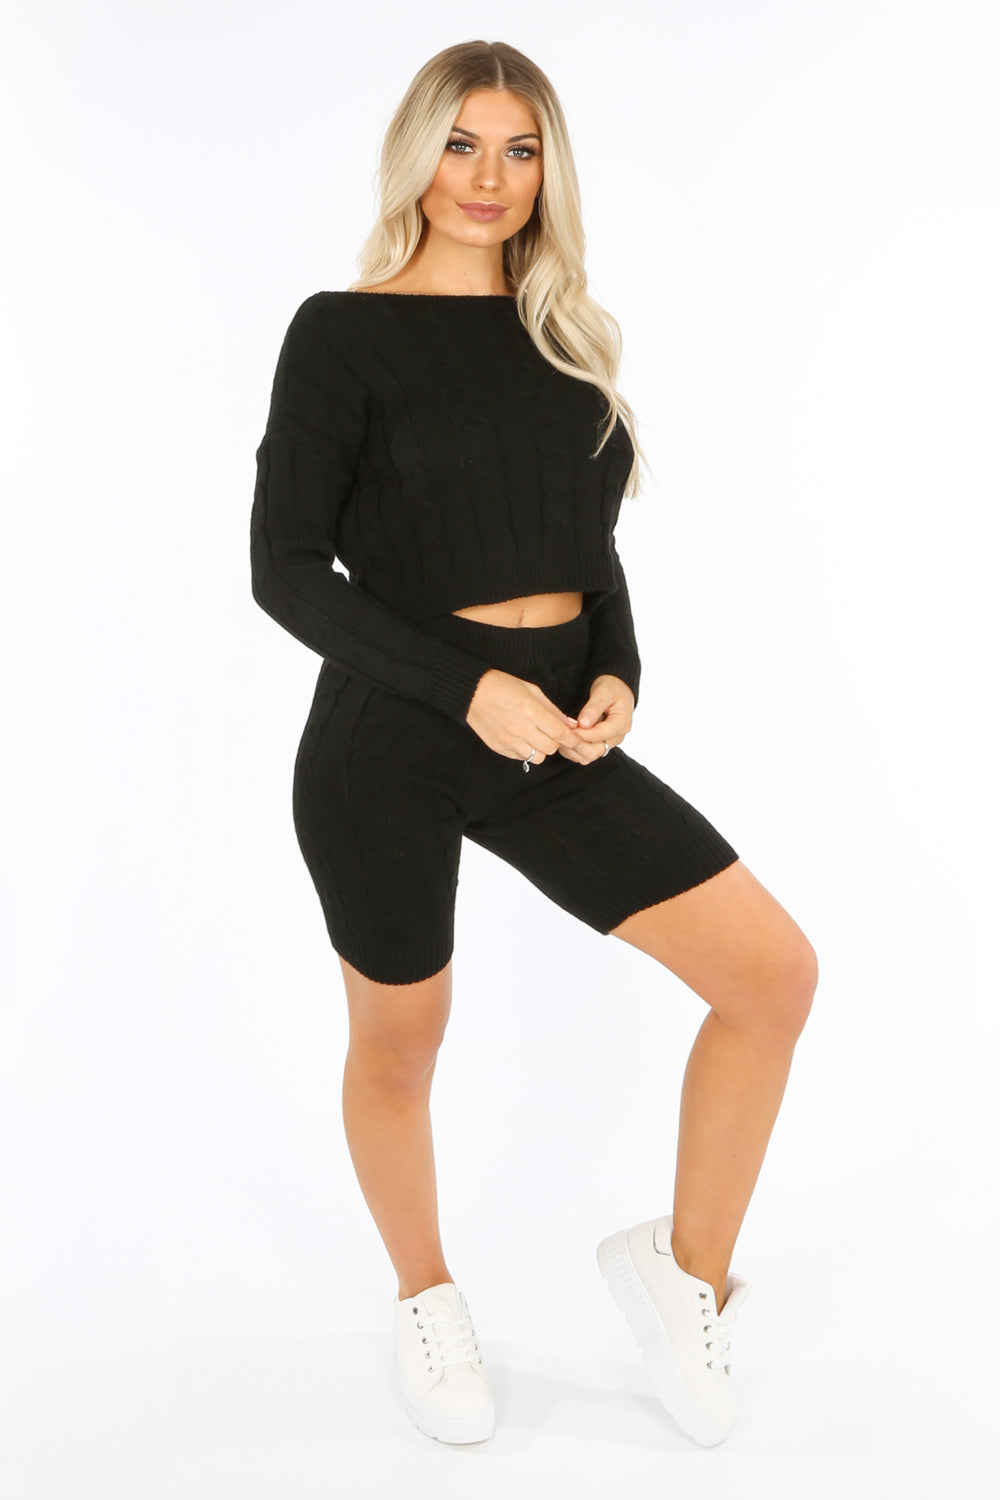 Black Knitted Jumper And Shorts